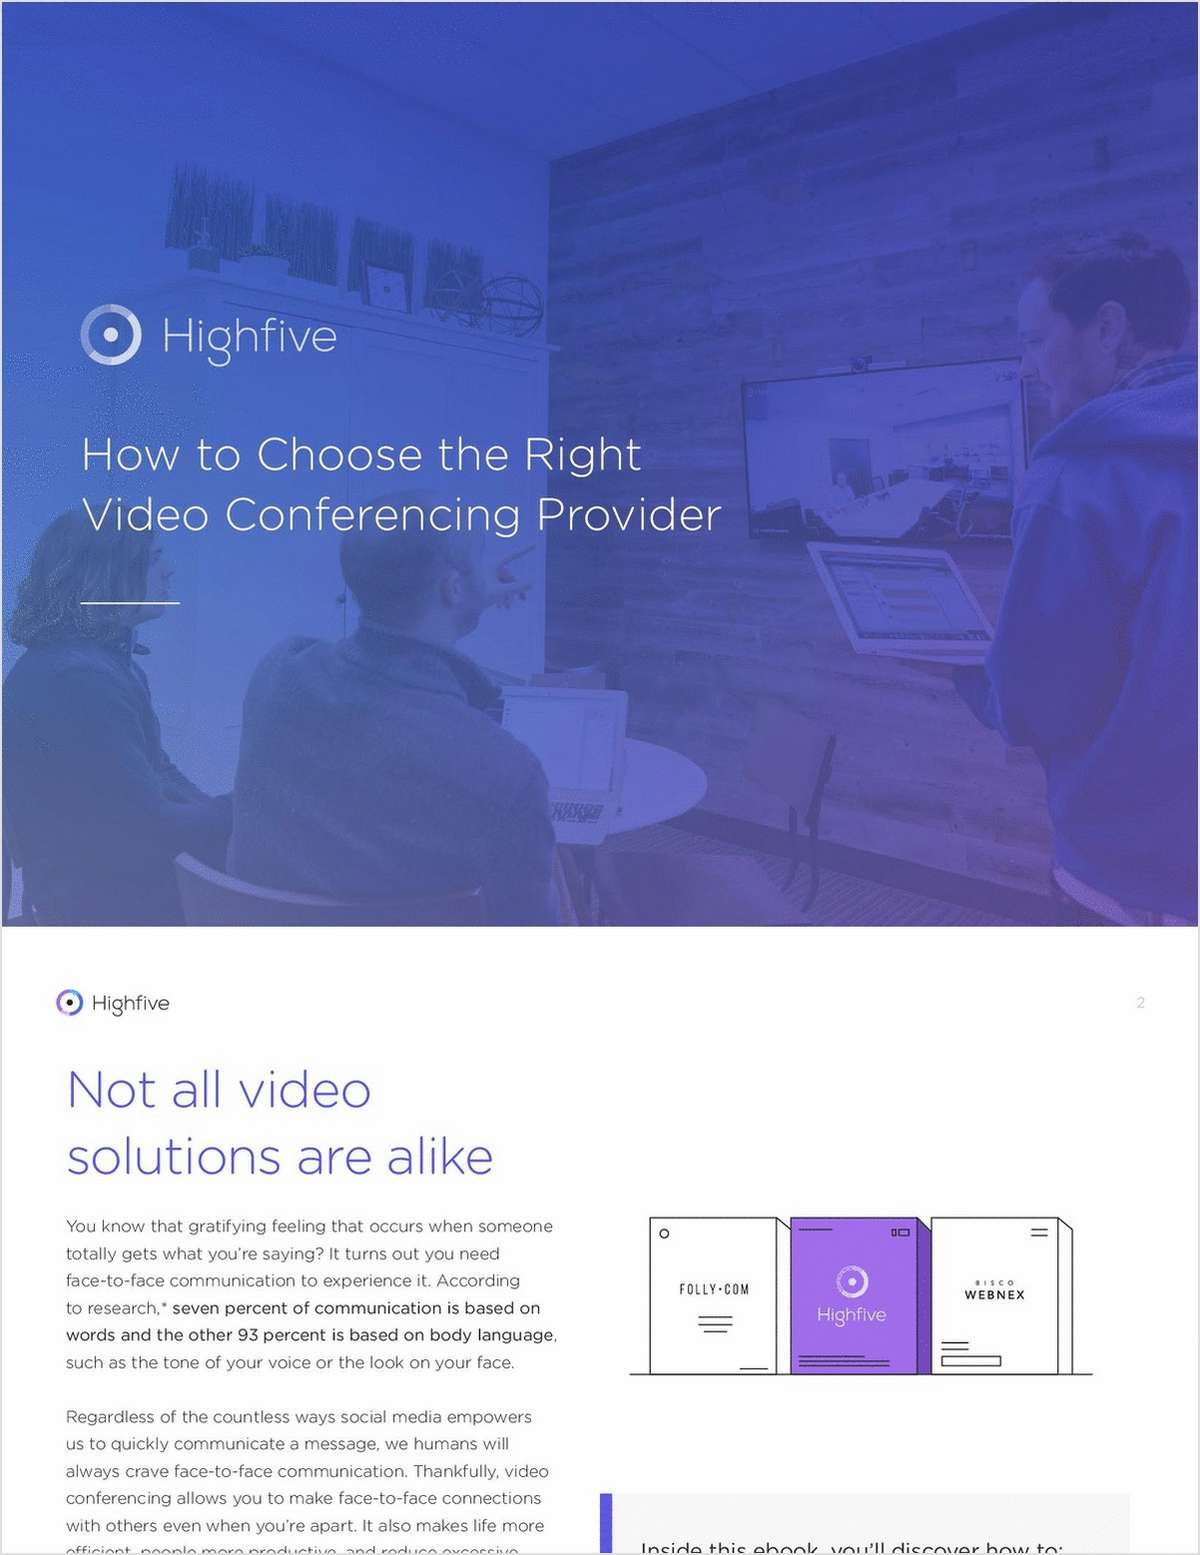 How to Choose the Right Video Conferencing Provider